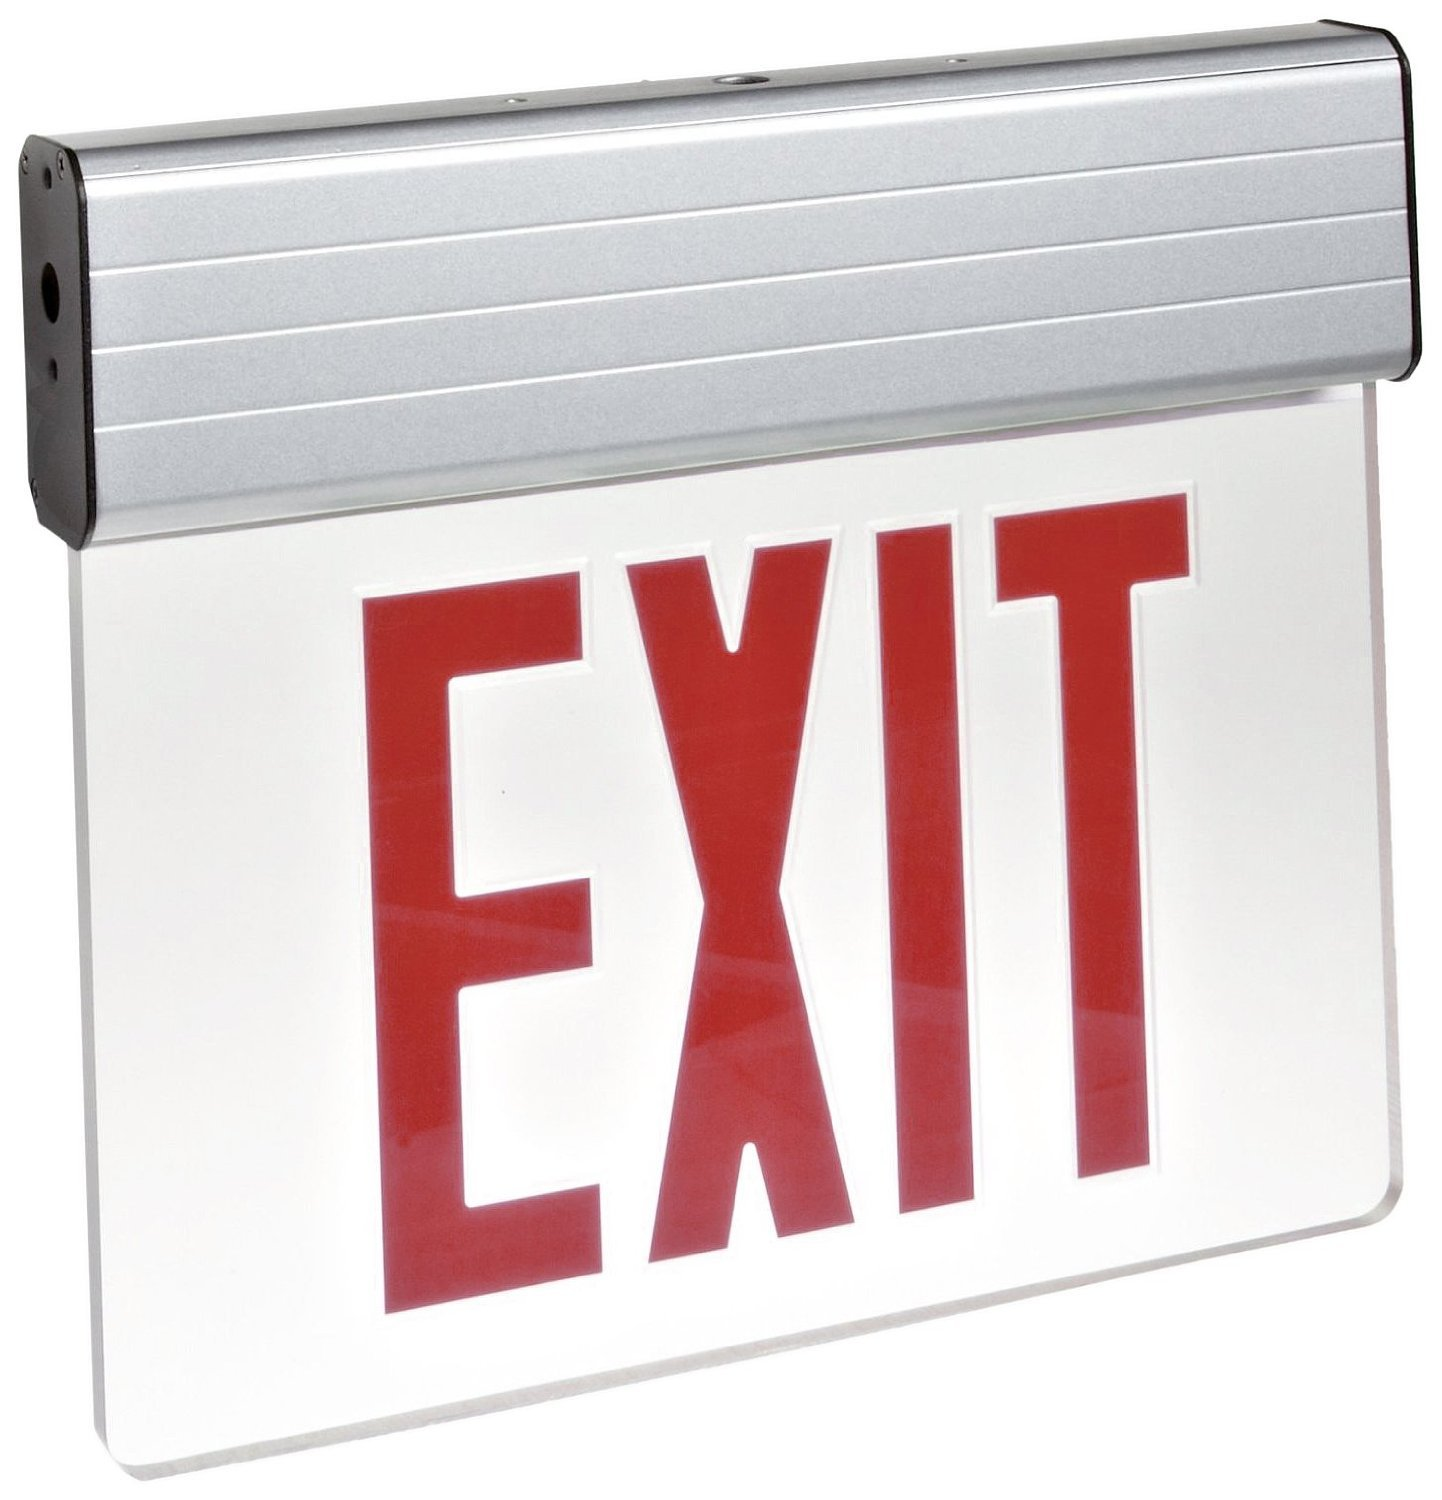 Morris Products 73310 Surface Mount Edge Lit LED Exit Sign, Red on Clear Panel Color, Anodized Aluminum Housing (5 Pack)